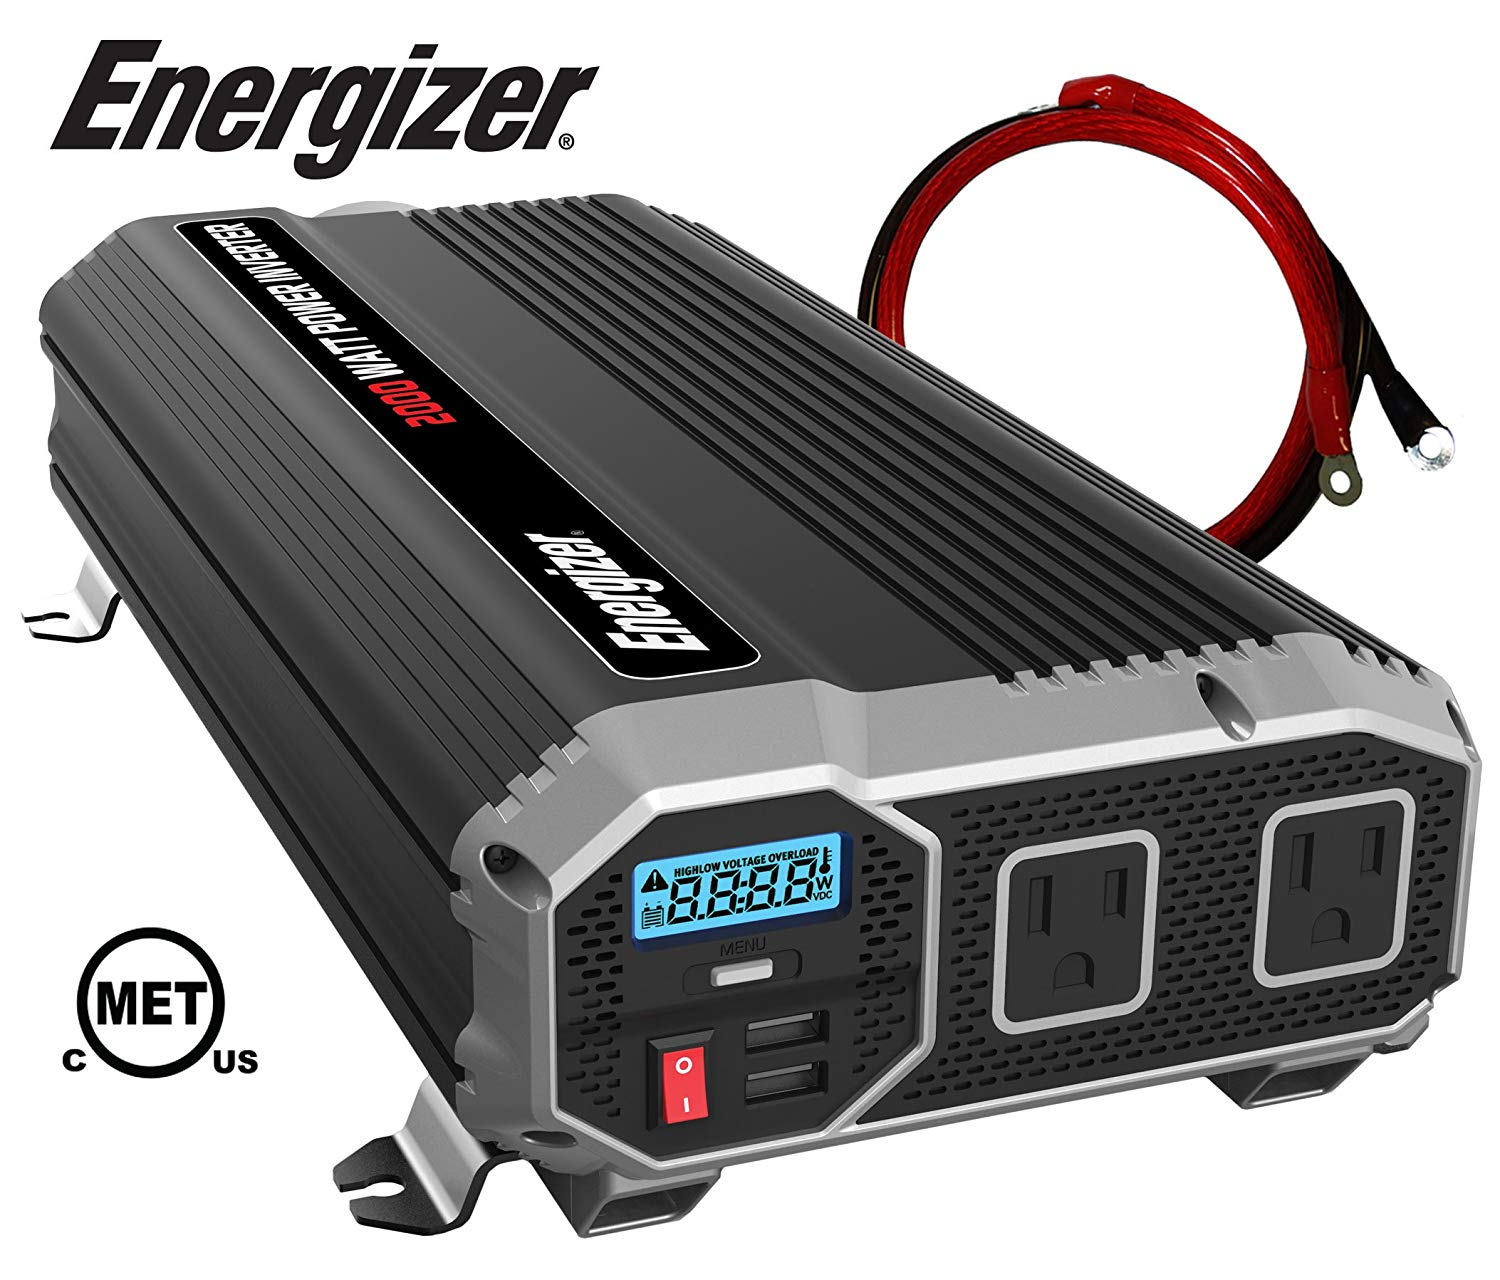 The 10 Best Power Inverters to Buy 2019 - Auto Quarterly